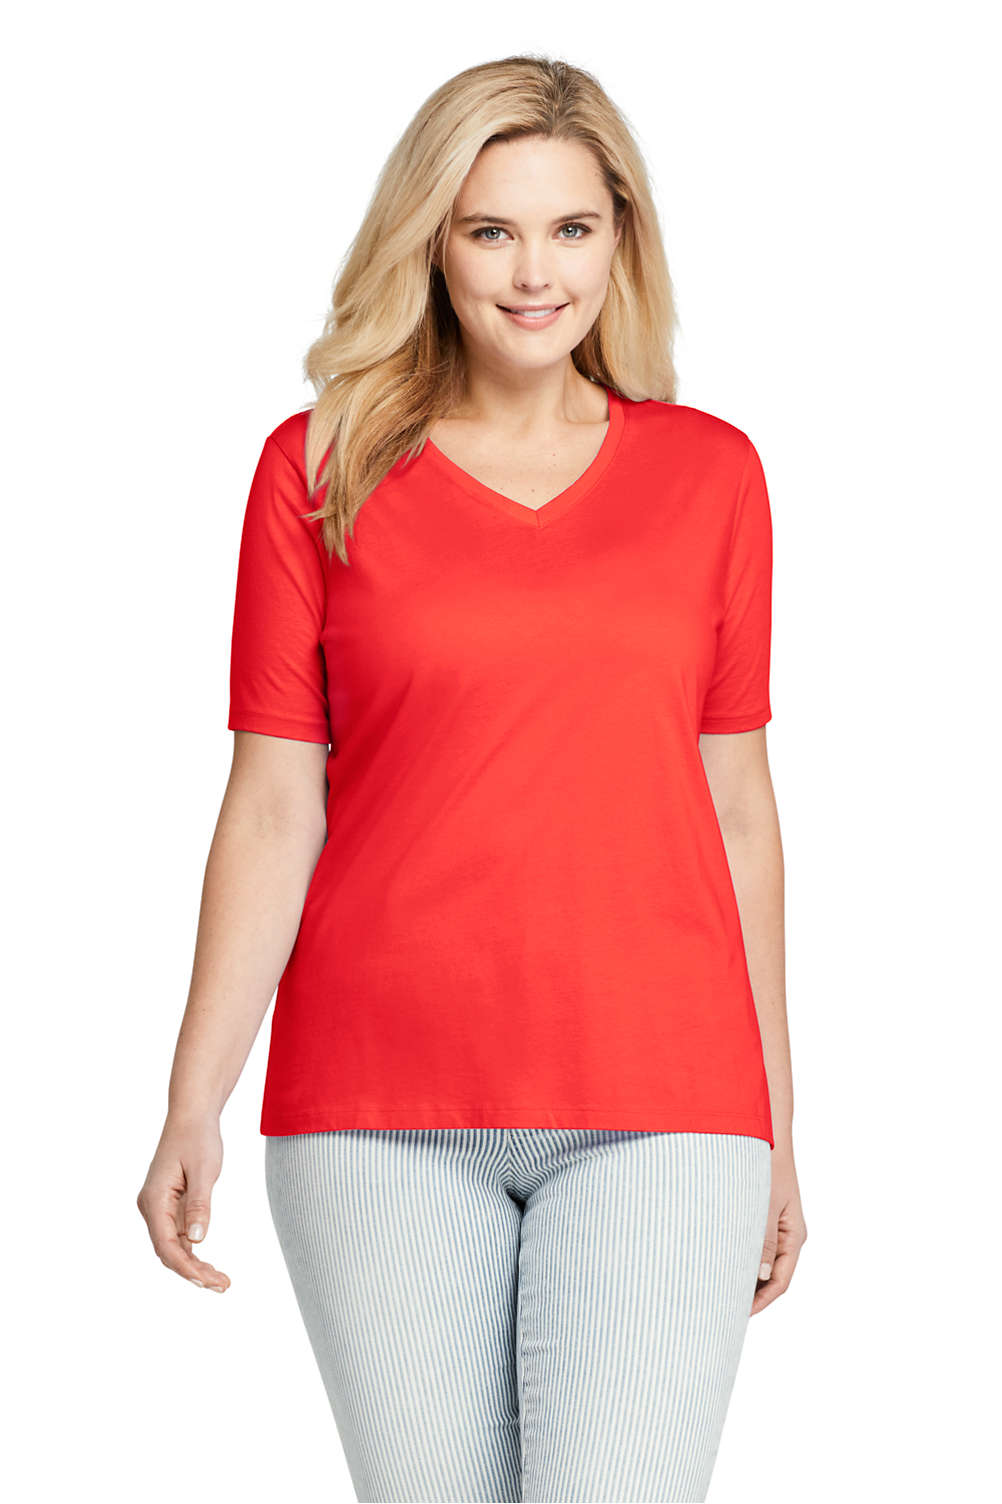 88220e4dae84 Women's Plus Size Relaxed Fit Supima Cotton V-neck Short Sleeve T-shirt